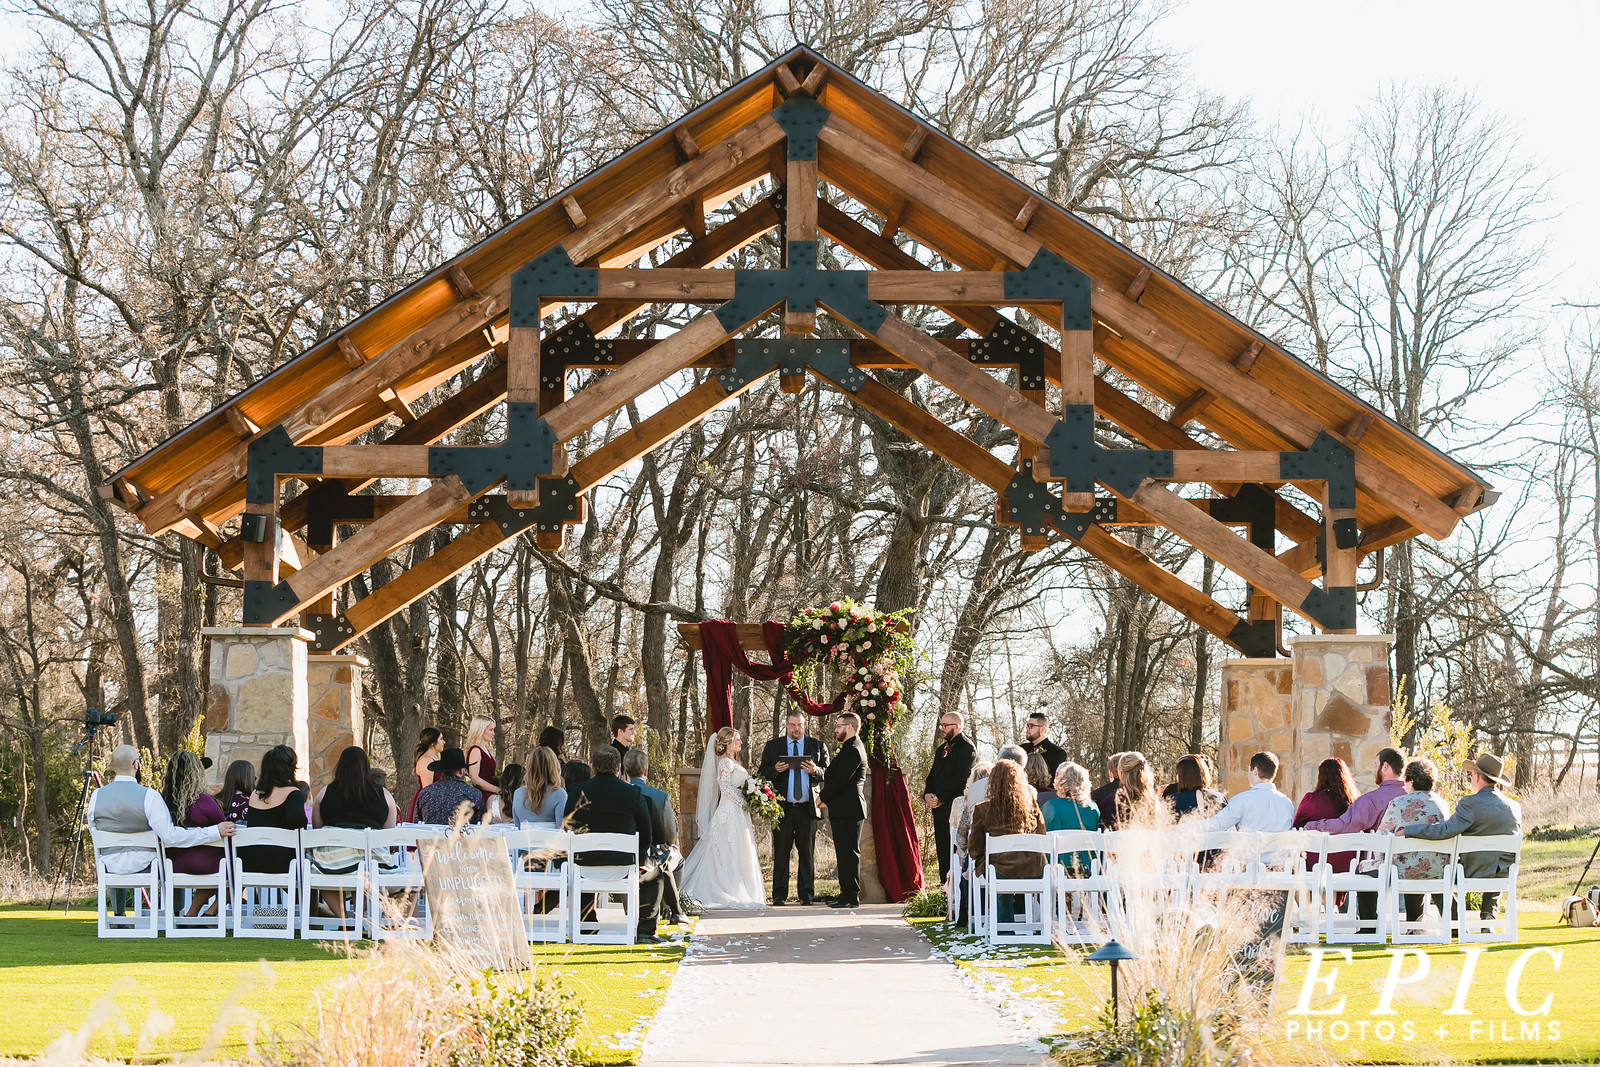 Hailee and Andrew standing under the pavilion during their ceremony outside